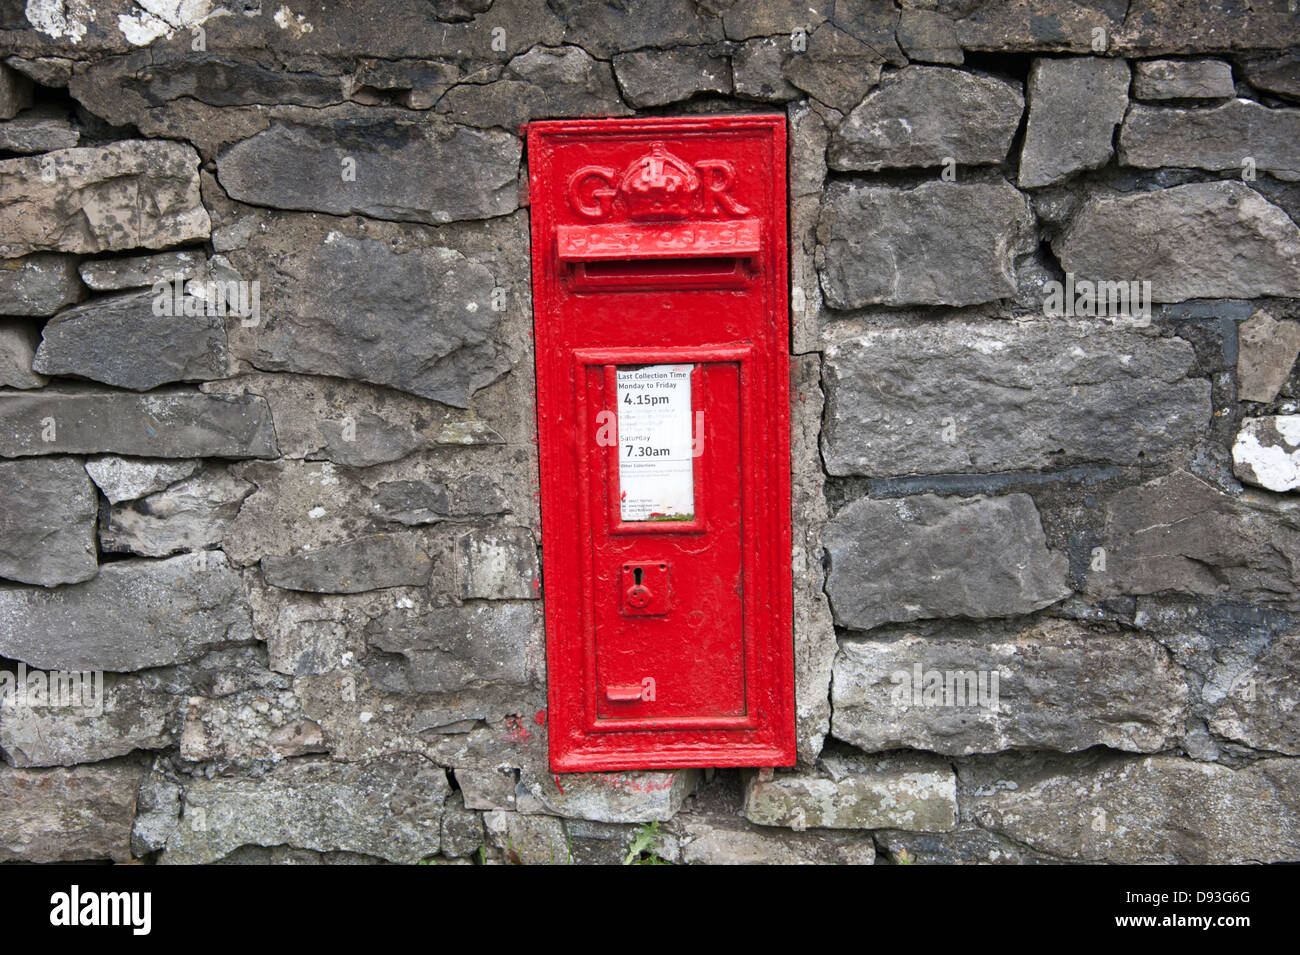 GR Royal Mail Letter Post Box Red Old UK England Stock Photo